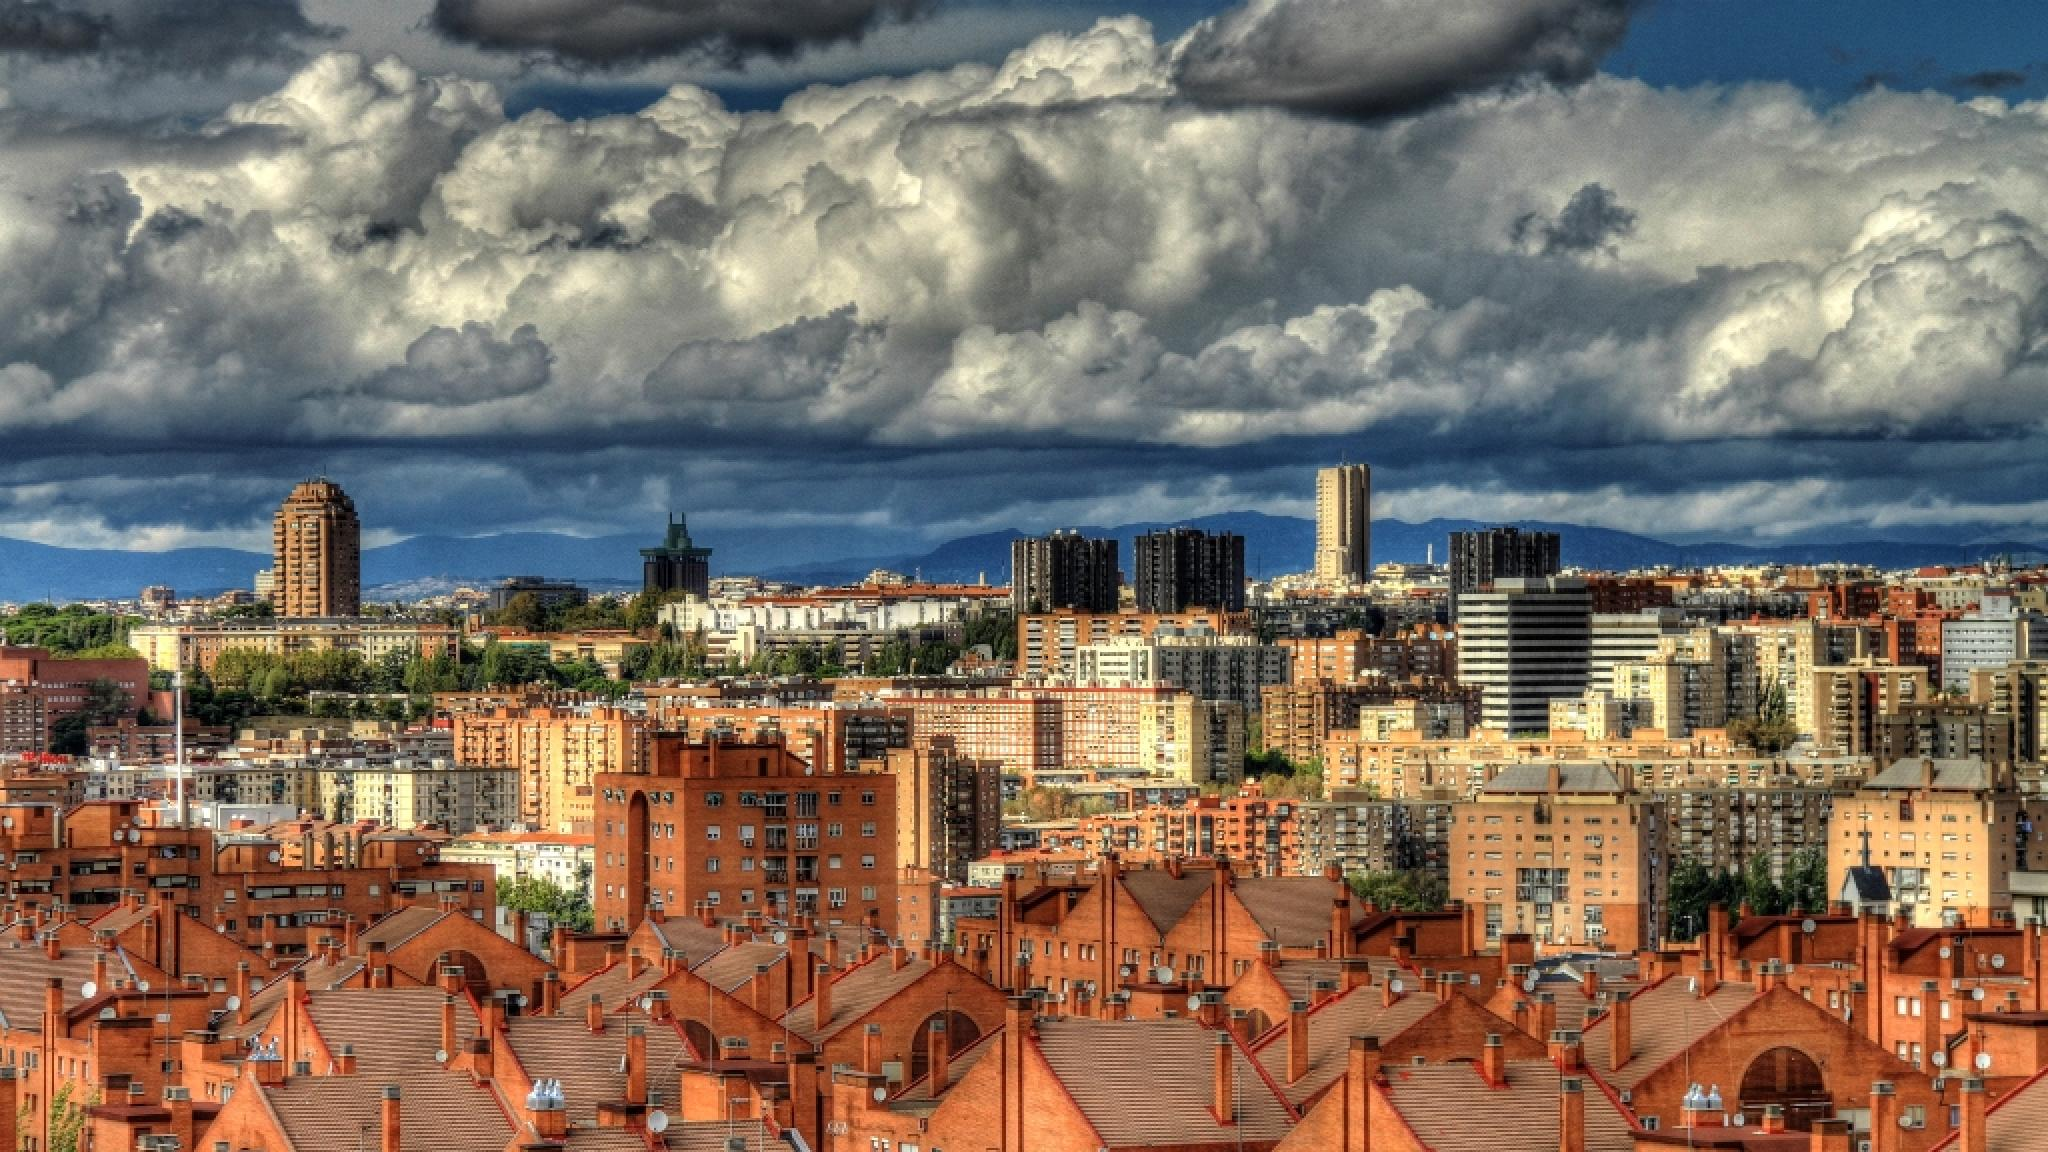 Madrid City, Spain by Peter Emmert